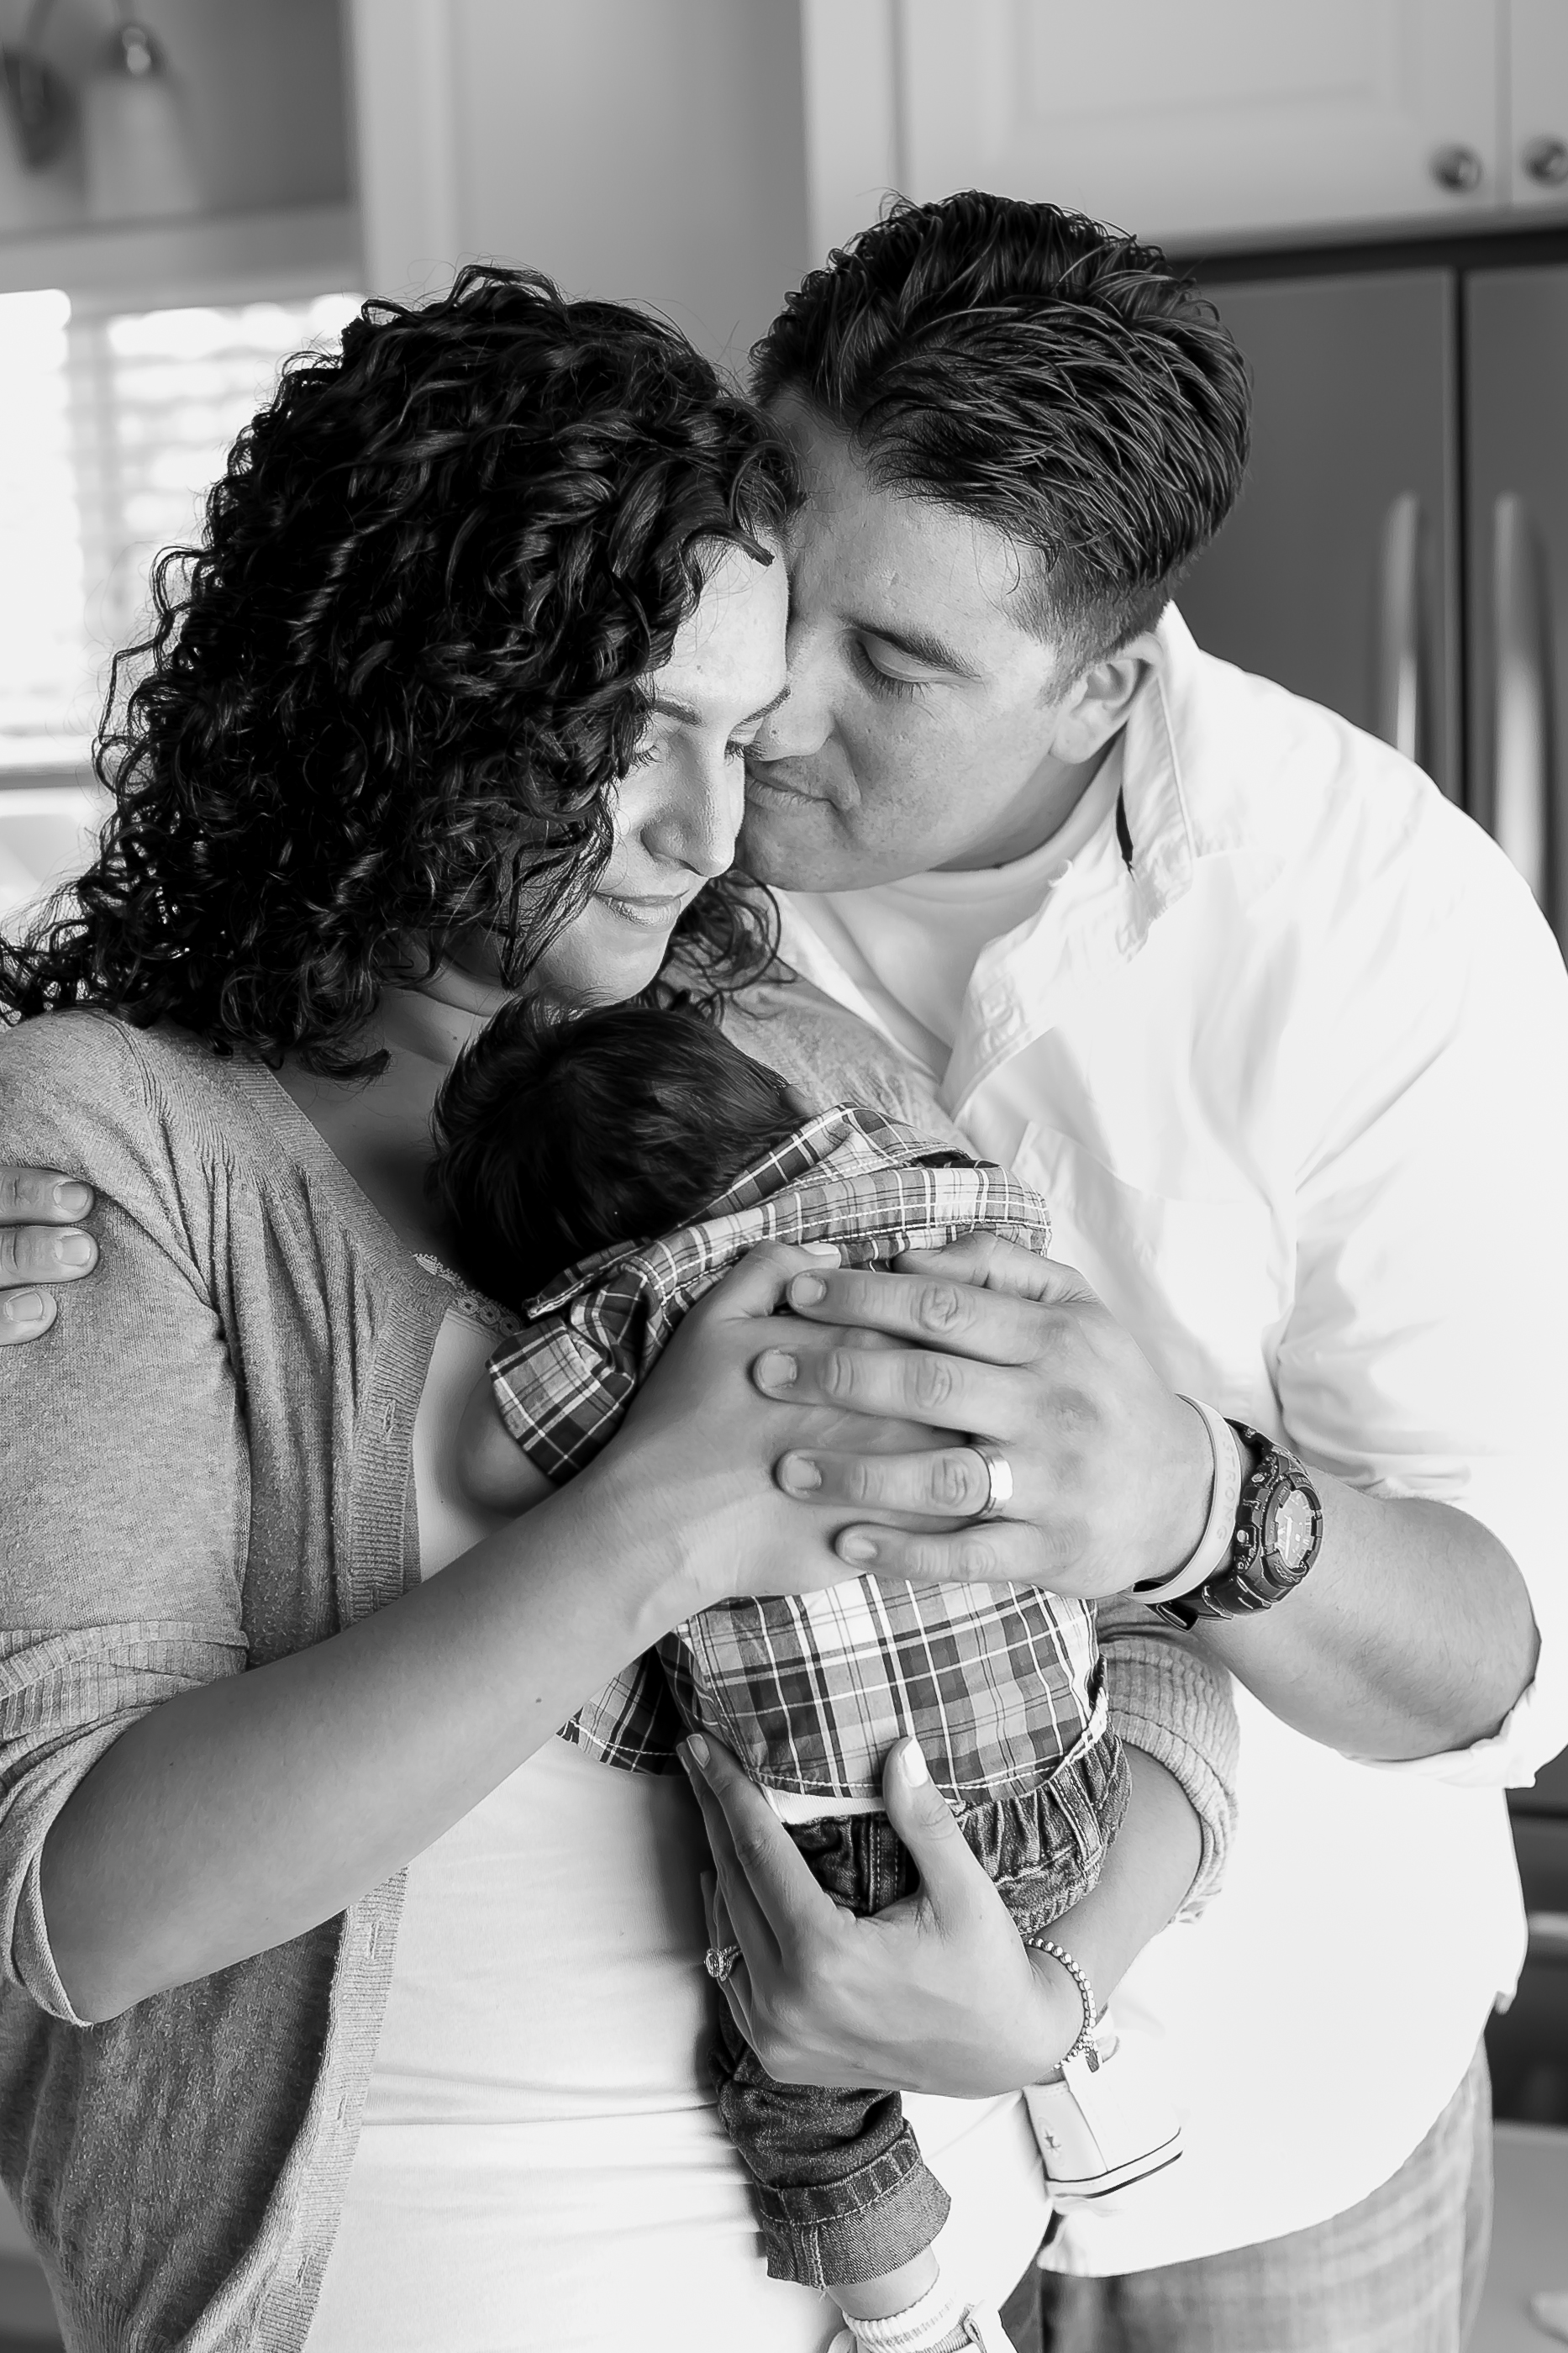 Gina Holt Photography, Lifestyle Newborn Session, In home baby photography, Oxnard Baby photographer, Simi Valley family photography, Oxnard Family Photos, Hello Handsome, Benjamin, baby boy, Little Guy, Handsome, Tiny Toes, Best of Los Angeles, San Gabriel Valley Newborn Photographer, Family, casual, relaxed, fun, lifestyle, love, Los Angeles Family Photographer, Orange County Family Photographer, siblings, brother, sister, mother and daughter, father and son, mother and son, father and daughters, babies, what to wear, newborn photography, maternity photography, couples, Baby, grow with me, Fall Family Portraits, Spring family portraits, Winter family portraits, Summer family portraits, Baby photos, family portrait, family photography, family photographer, candid photography, maternity photography, maternity photographer, newborn photography, newborn photographer, maternity photography, family photos, newborn baby photos, baby portraits, family portrait photography, family, portrait photographer, family photo shoot, infant photography, baby photographer, photography pricing, baby photoshoot, maternity photos, pregnancy photos, kids photos, portrait photographers, family photography prices, newborn pictures, family portrait photographer, maternity photo shoot, maternity pictures, maternity photos, children photos, Maternity Photography in Orange County CA, Maternity Photography in Los Angeles CA, Baby Photographers in Los Angeles CA, Family Portrait in Los Angeles CA, Family Portrait Photography in Los Angeles, professional portrait photography, professional photographers, new baby photos, professional family photos, best portrait photographers, toddler photography, best newborn photography, best family photographer, professional pregnancy photos, top portrait photographers, outdoor family portraits, baby photography at home, professional baby photos, find photographers, Family portrait pricing packages, Family portrait photography package, family portrait photograp